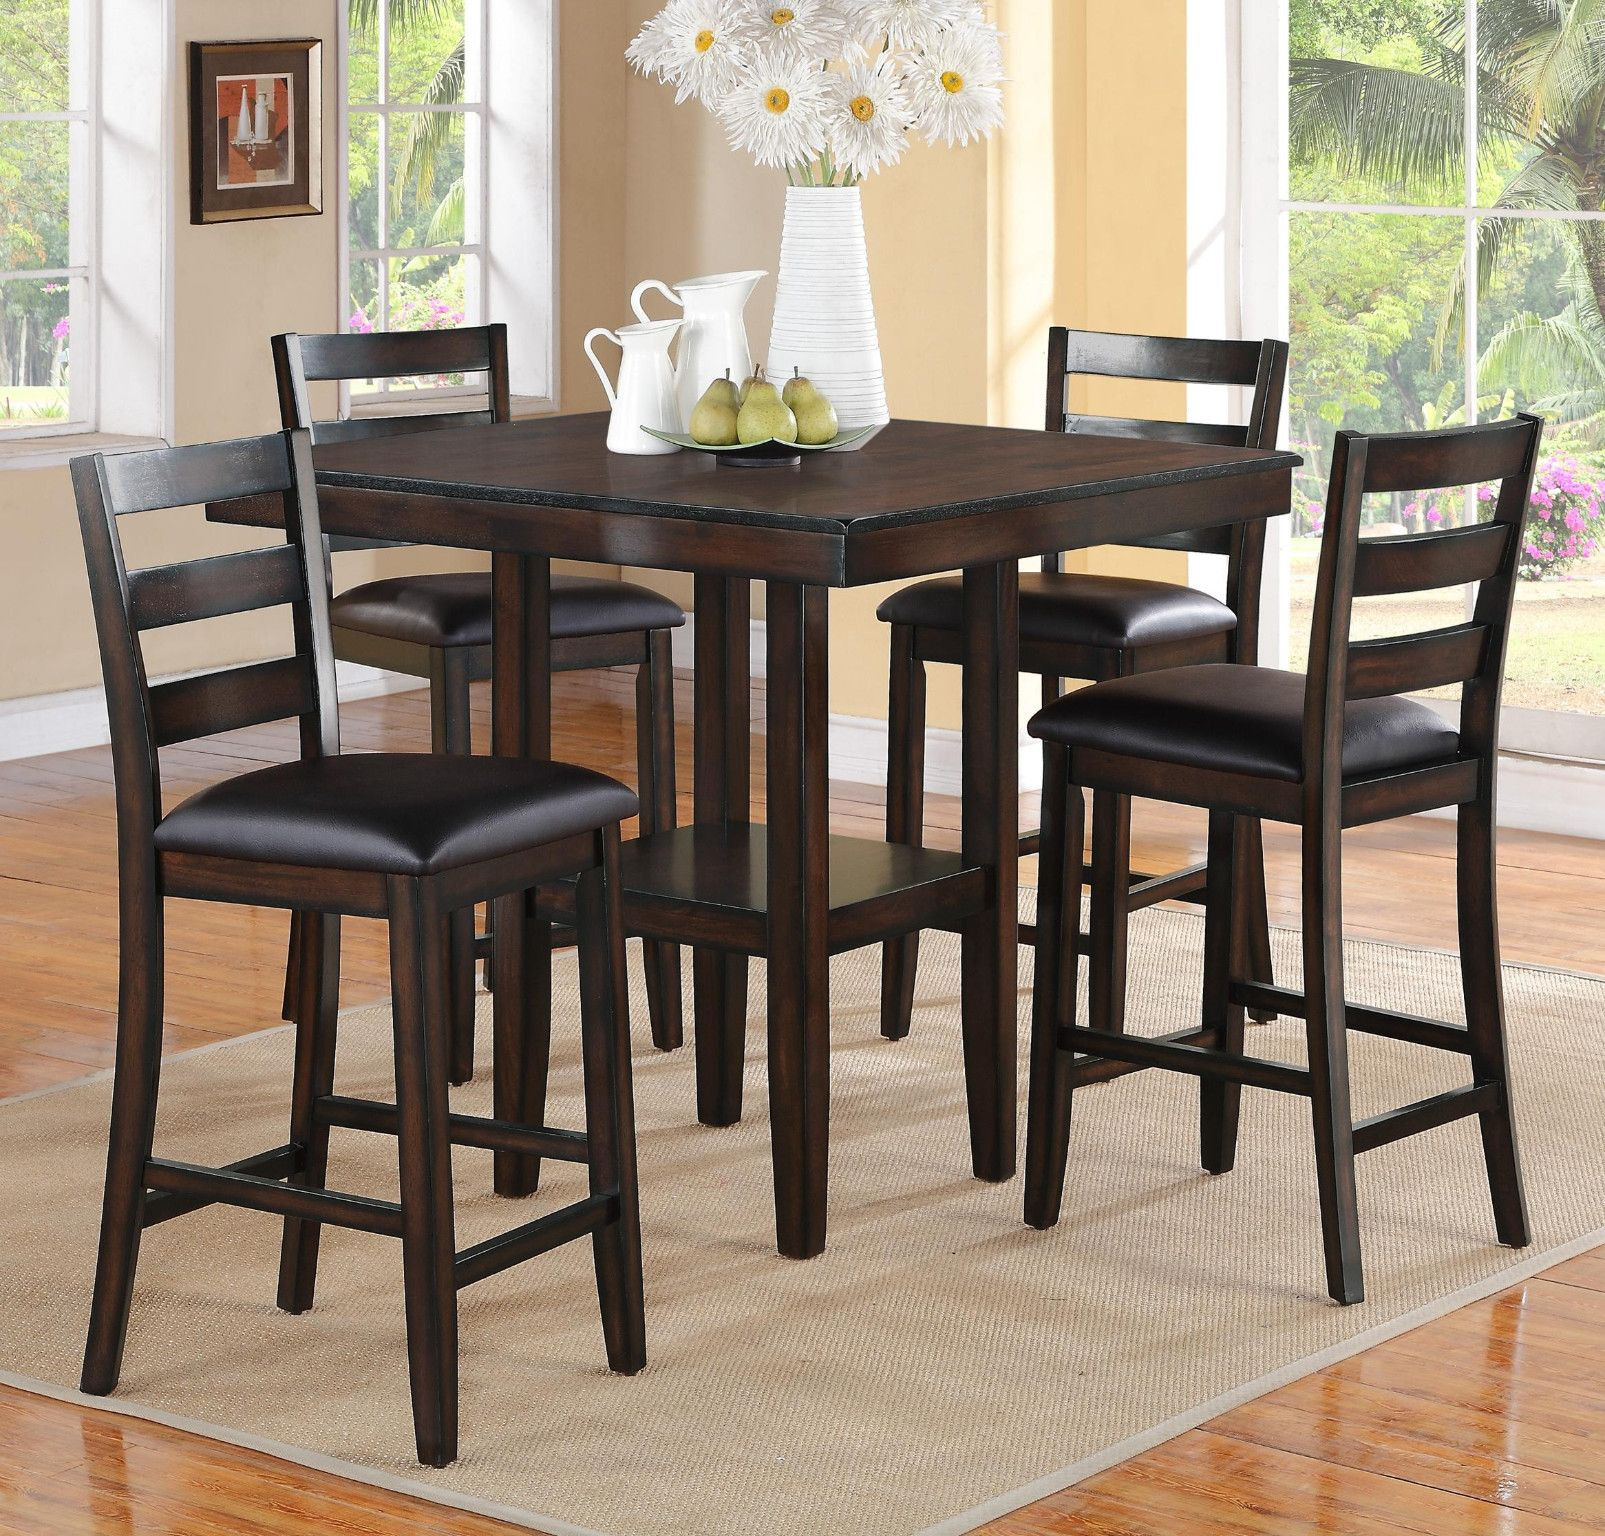 Tahoe 5pc Counter Height Dinette Set 429 Table 40 X 40 X 36 H Chair 17 X 17 X 39 Counter Height Dining Table Furniture Dining Table Chairs